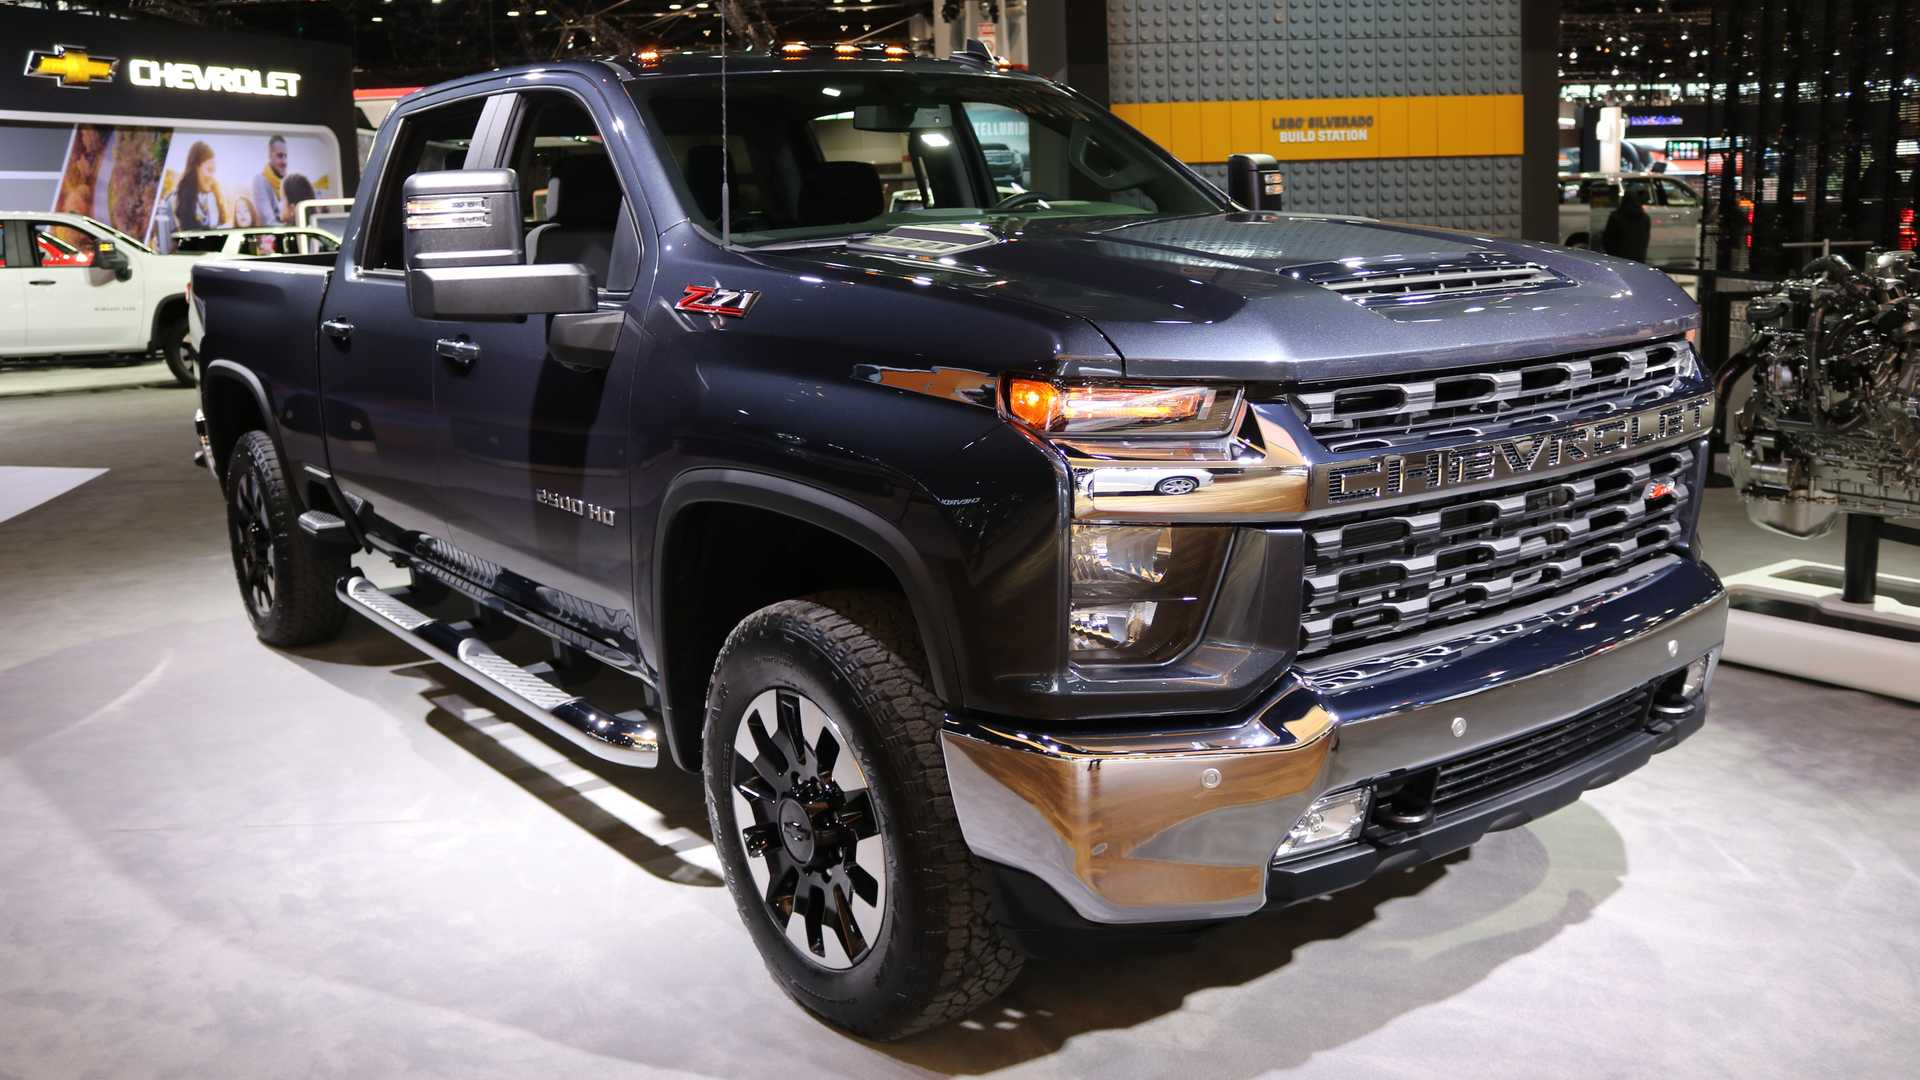 75 A 2020 Chevrolet Truck Images First Drive